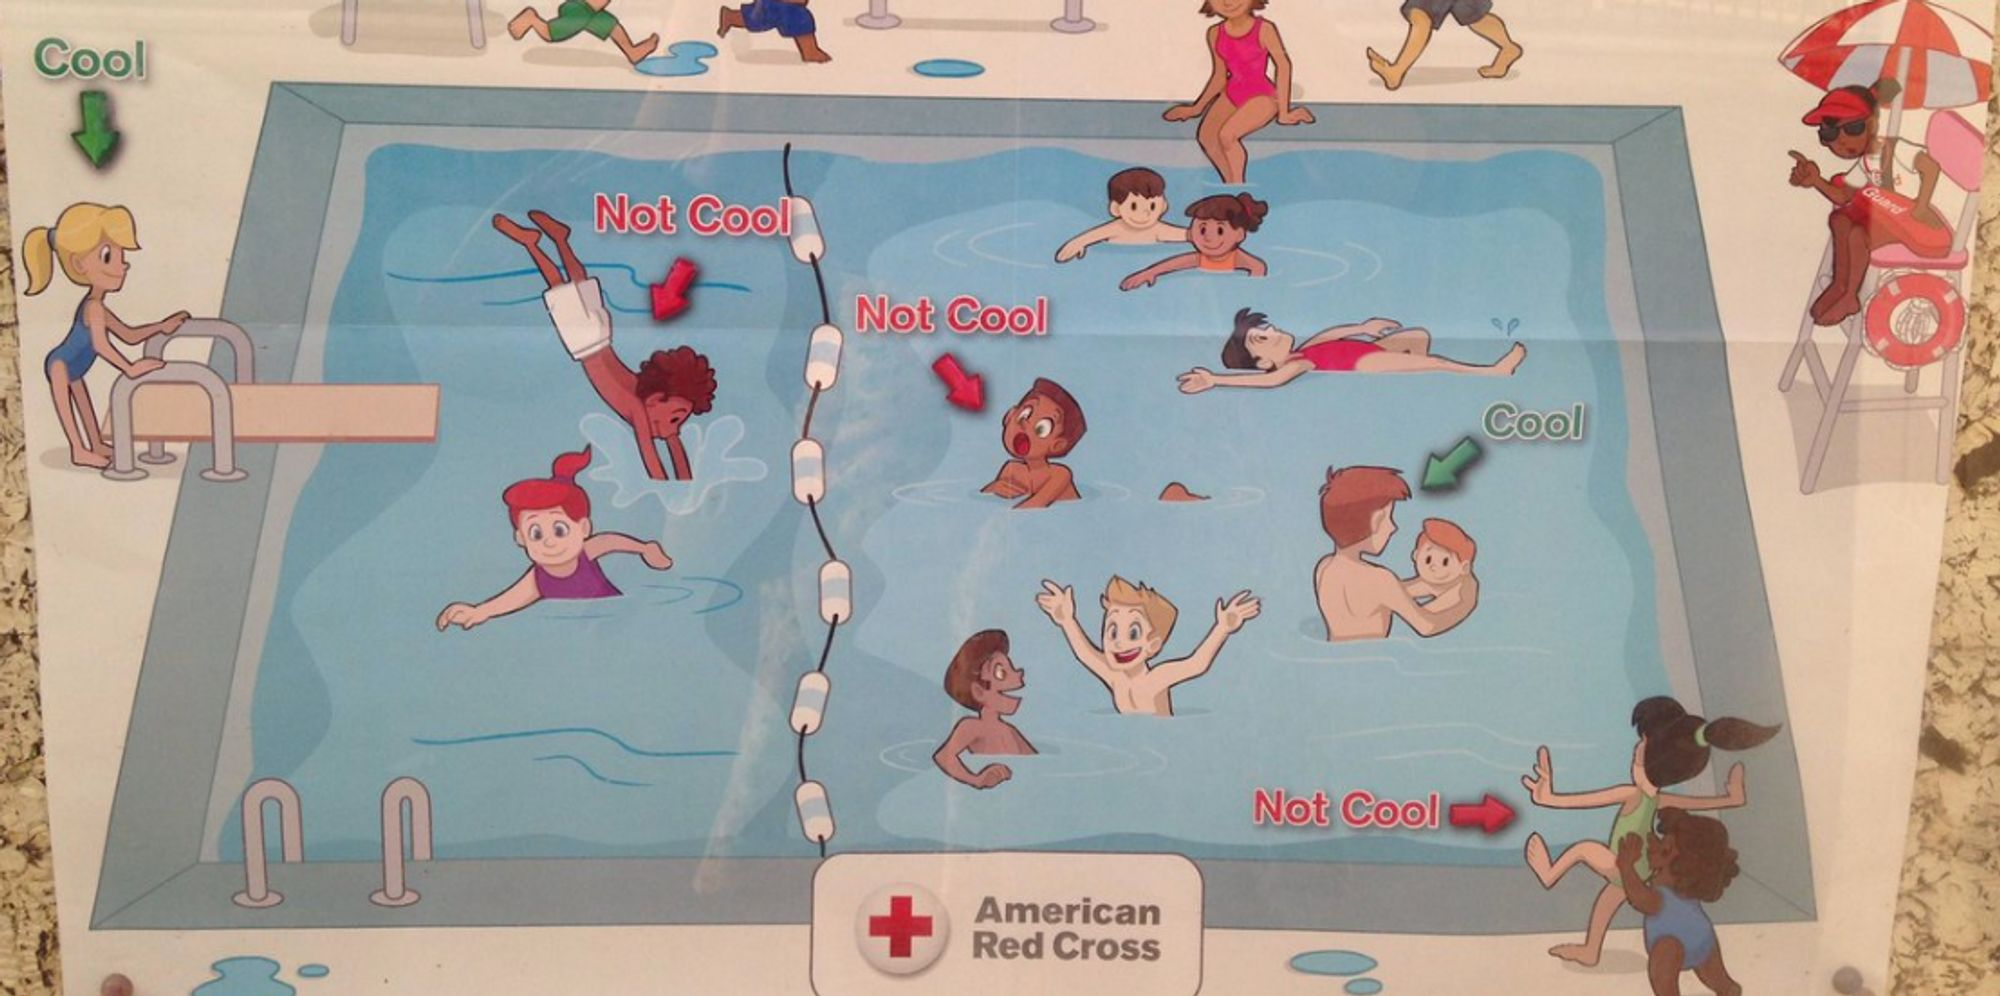 Red Cross Apologizes For 'Super Racist' Pool Safety Poster